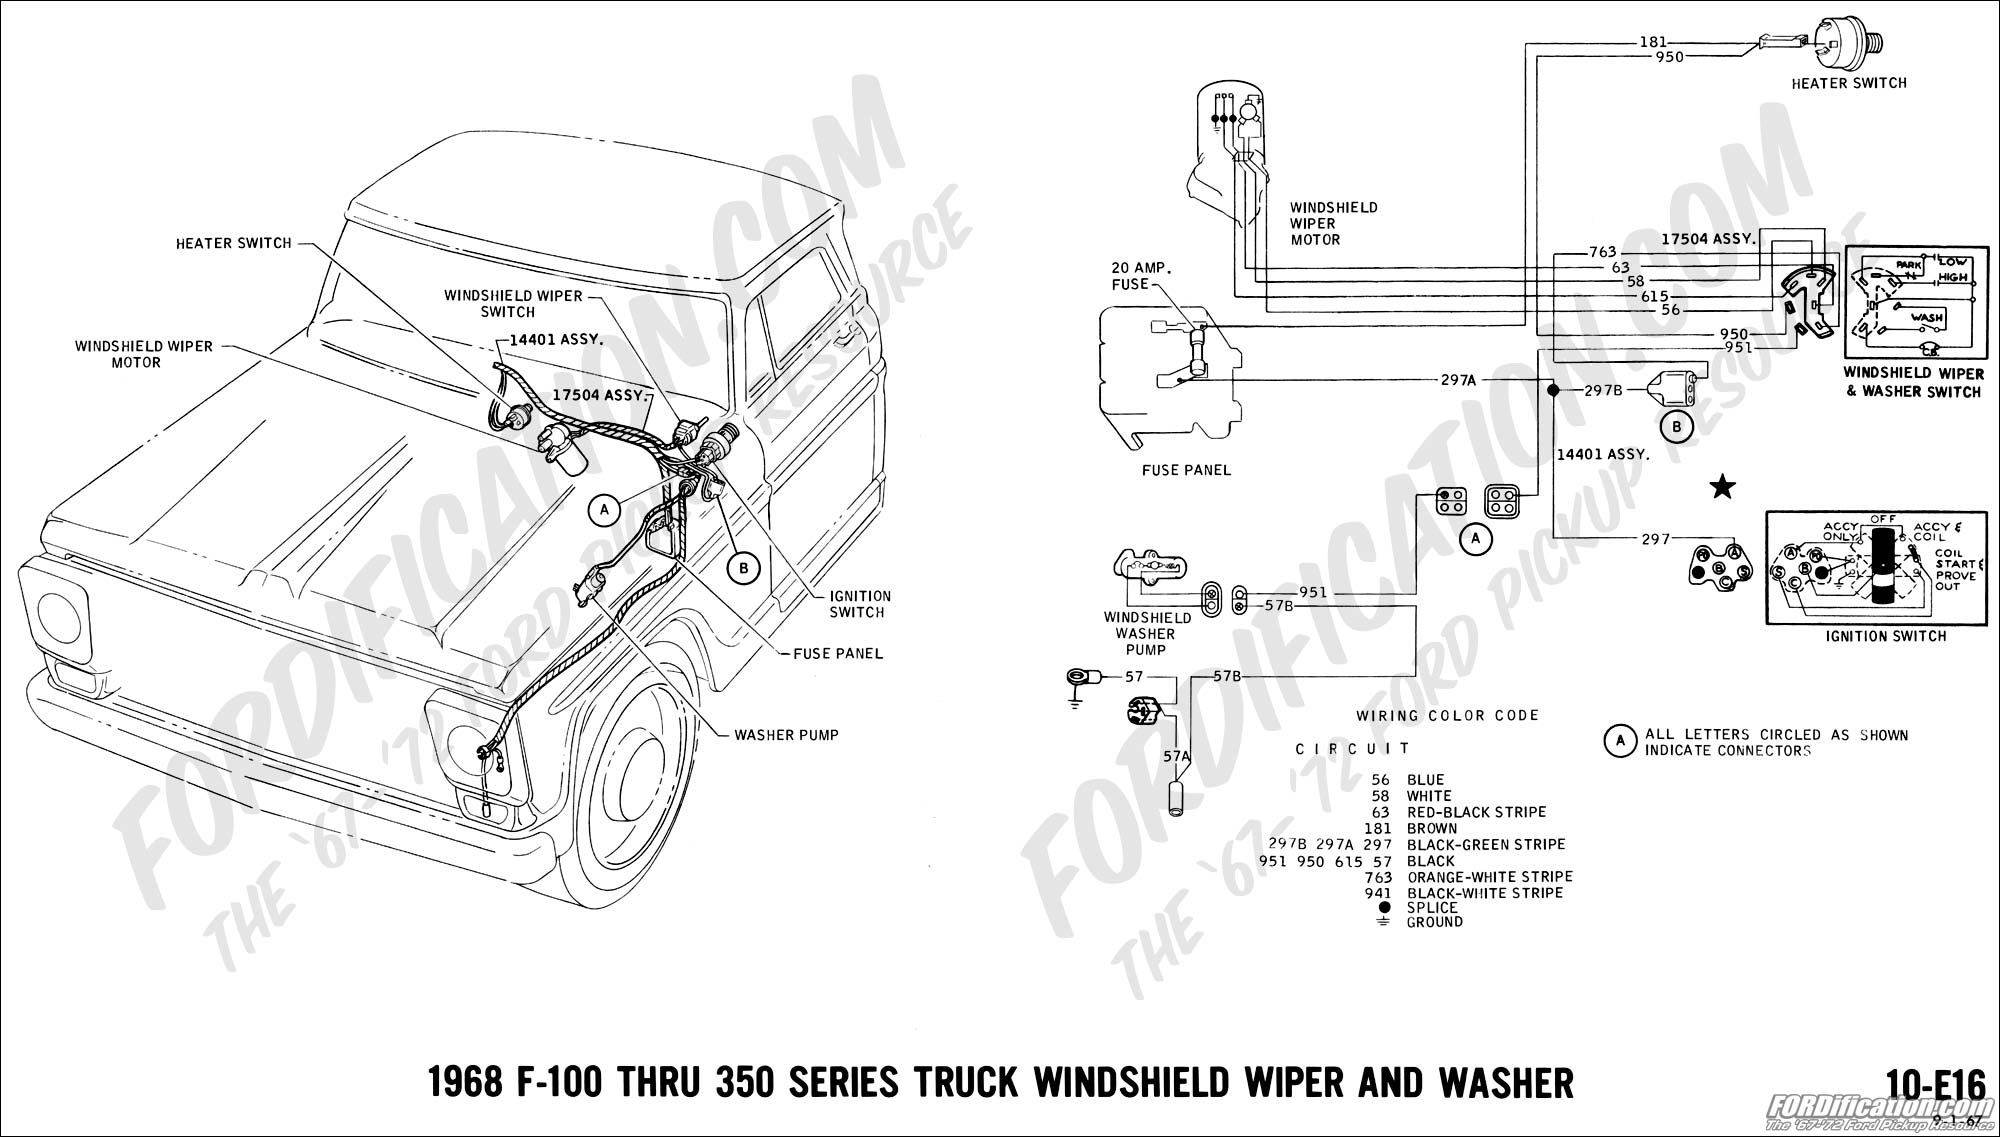 1987 Ford Mustang Fuse Box Location Trusted Wiring Diagram 1968 F100 Easy To Read Diagrams U2022 2010